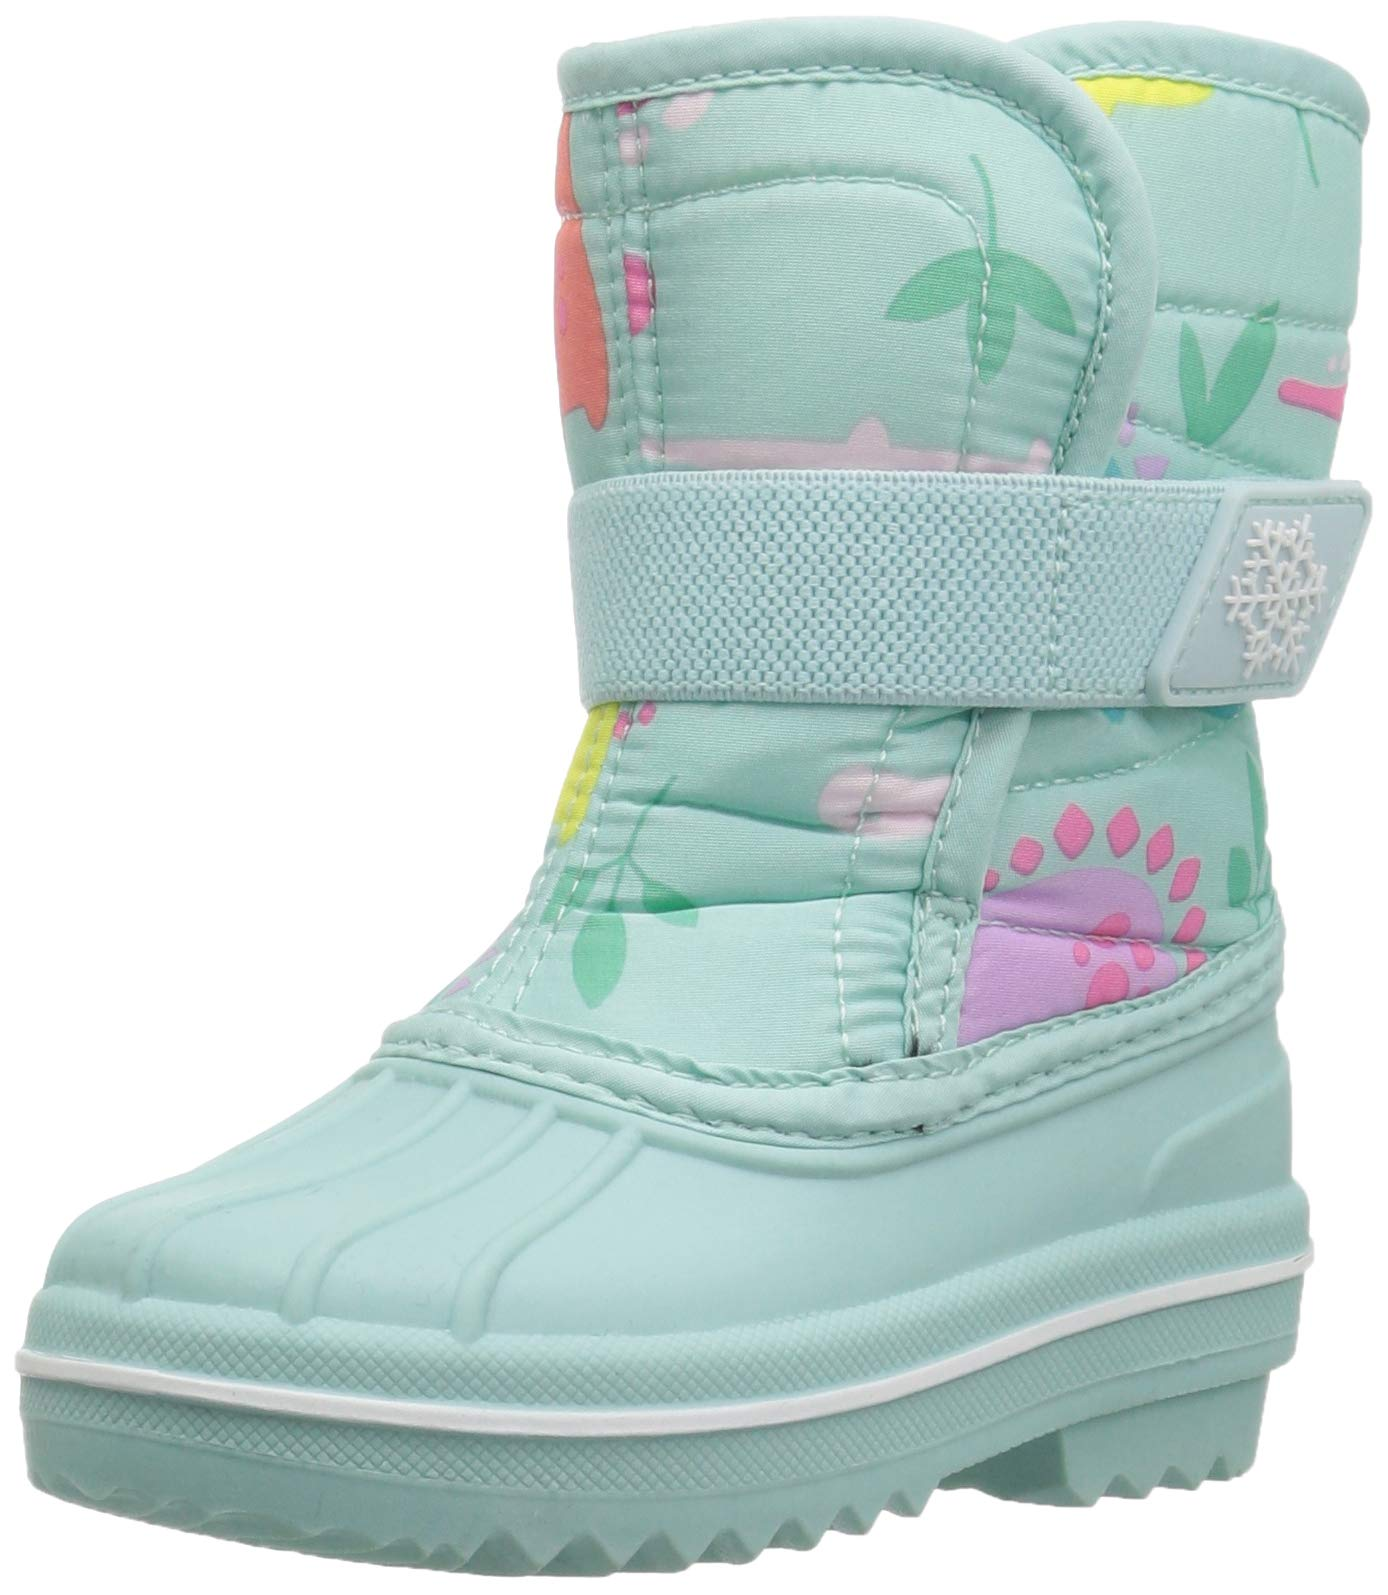 The Children's Place Girls Snow Boot, Mint Tea, TDDLR 6 Child US Toddler